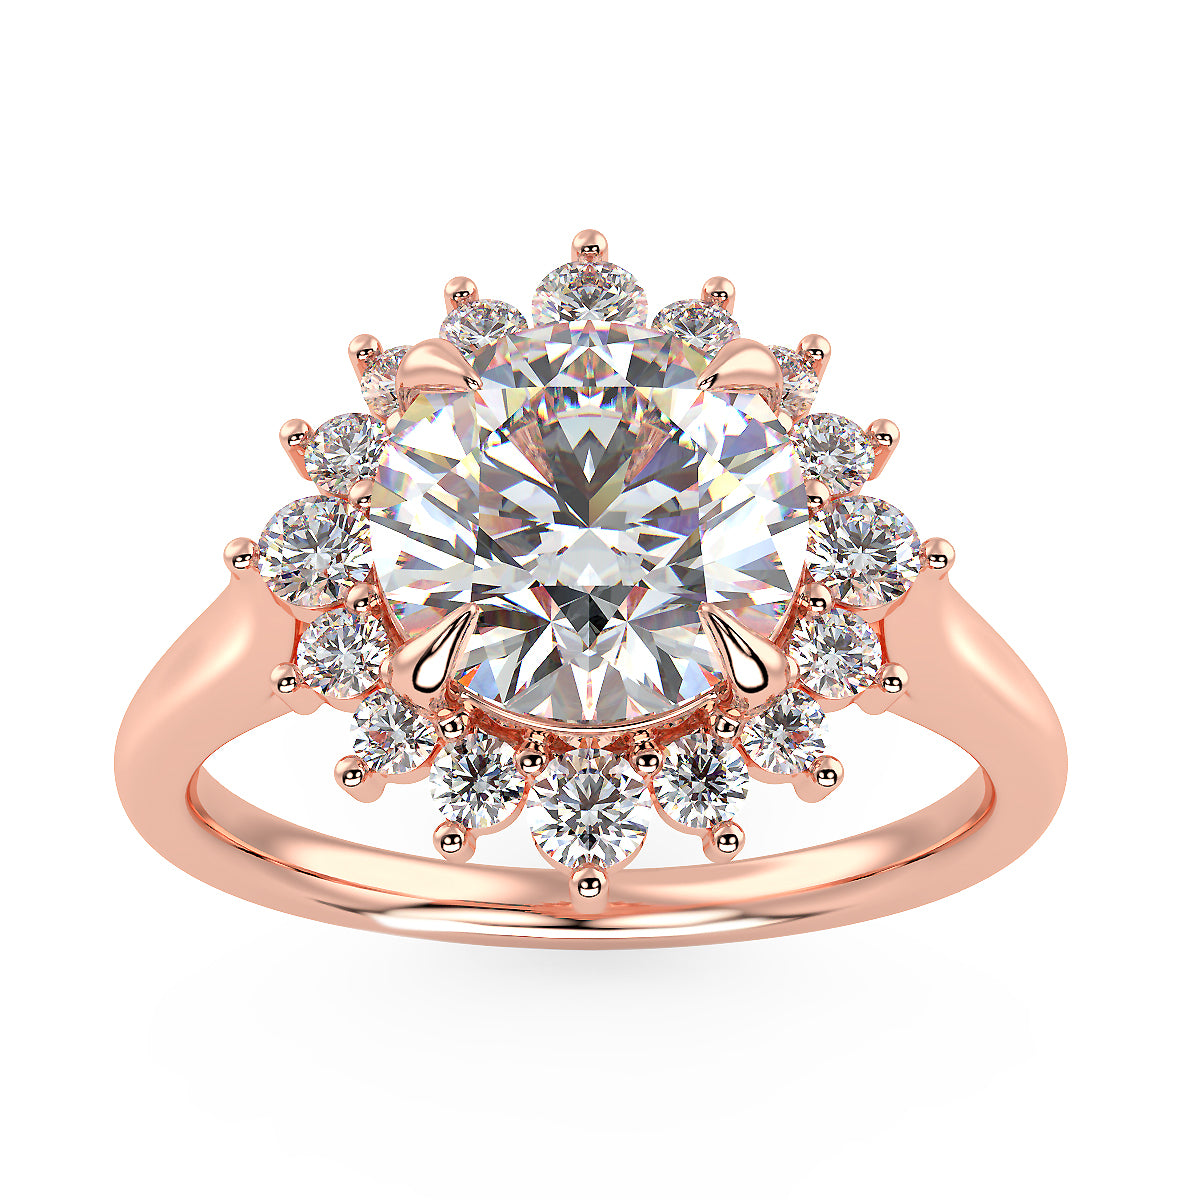 Starburst Engagement Ring in Rose Gold